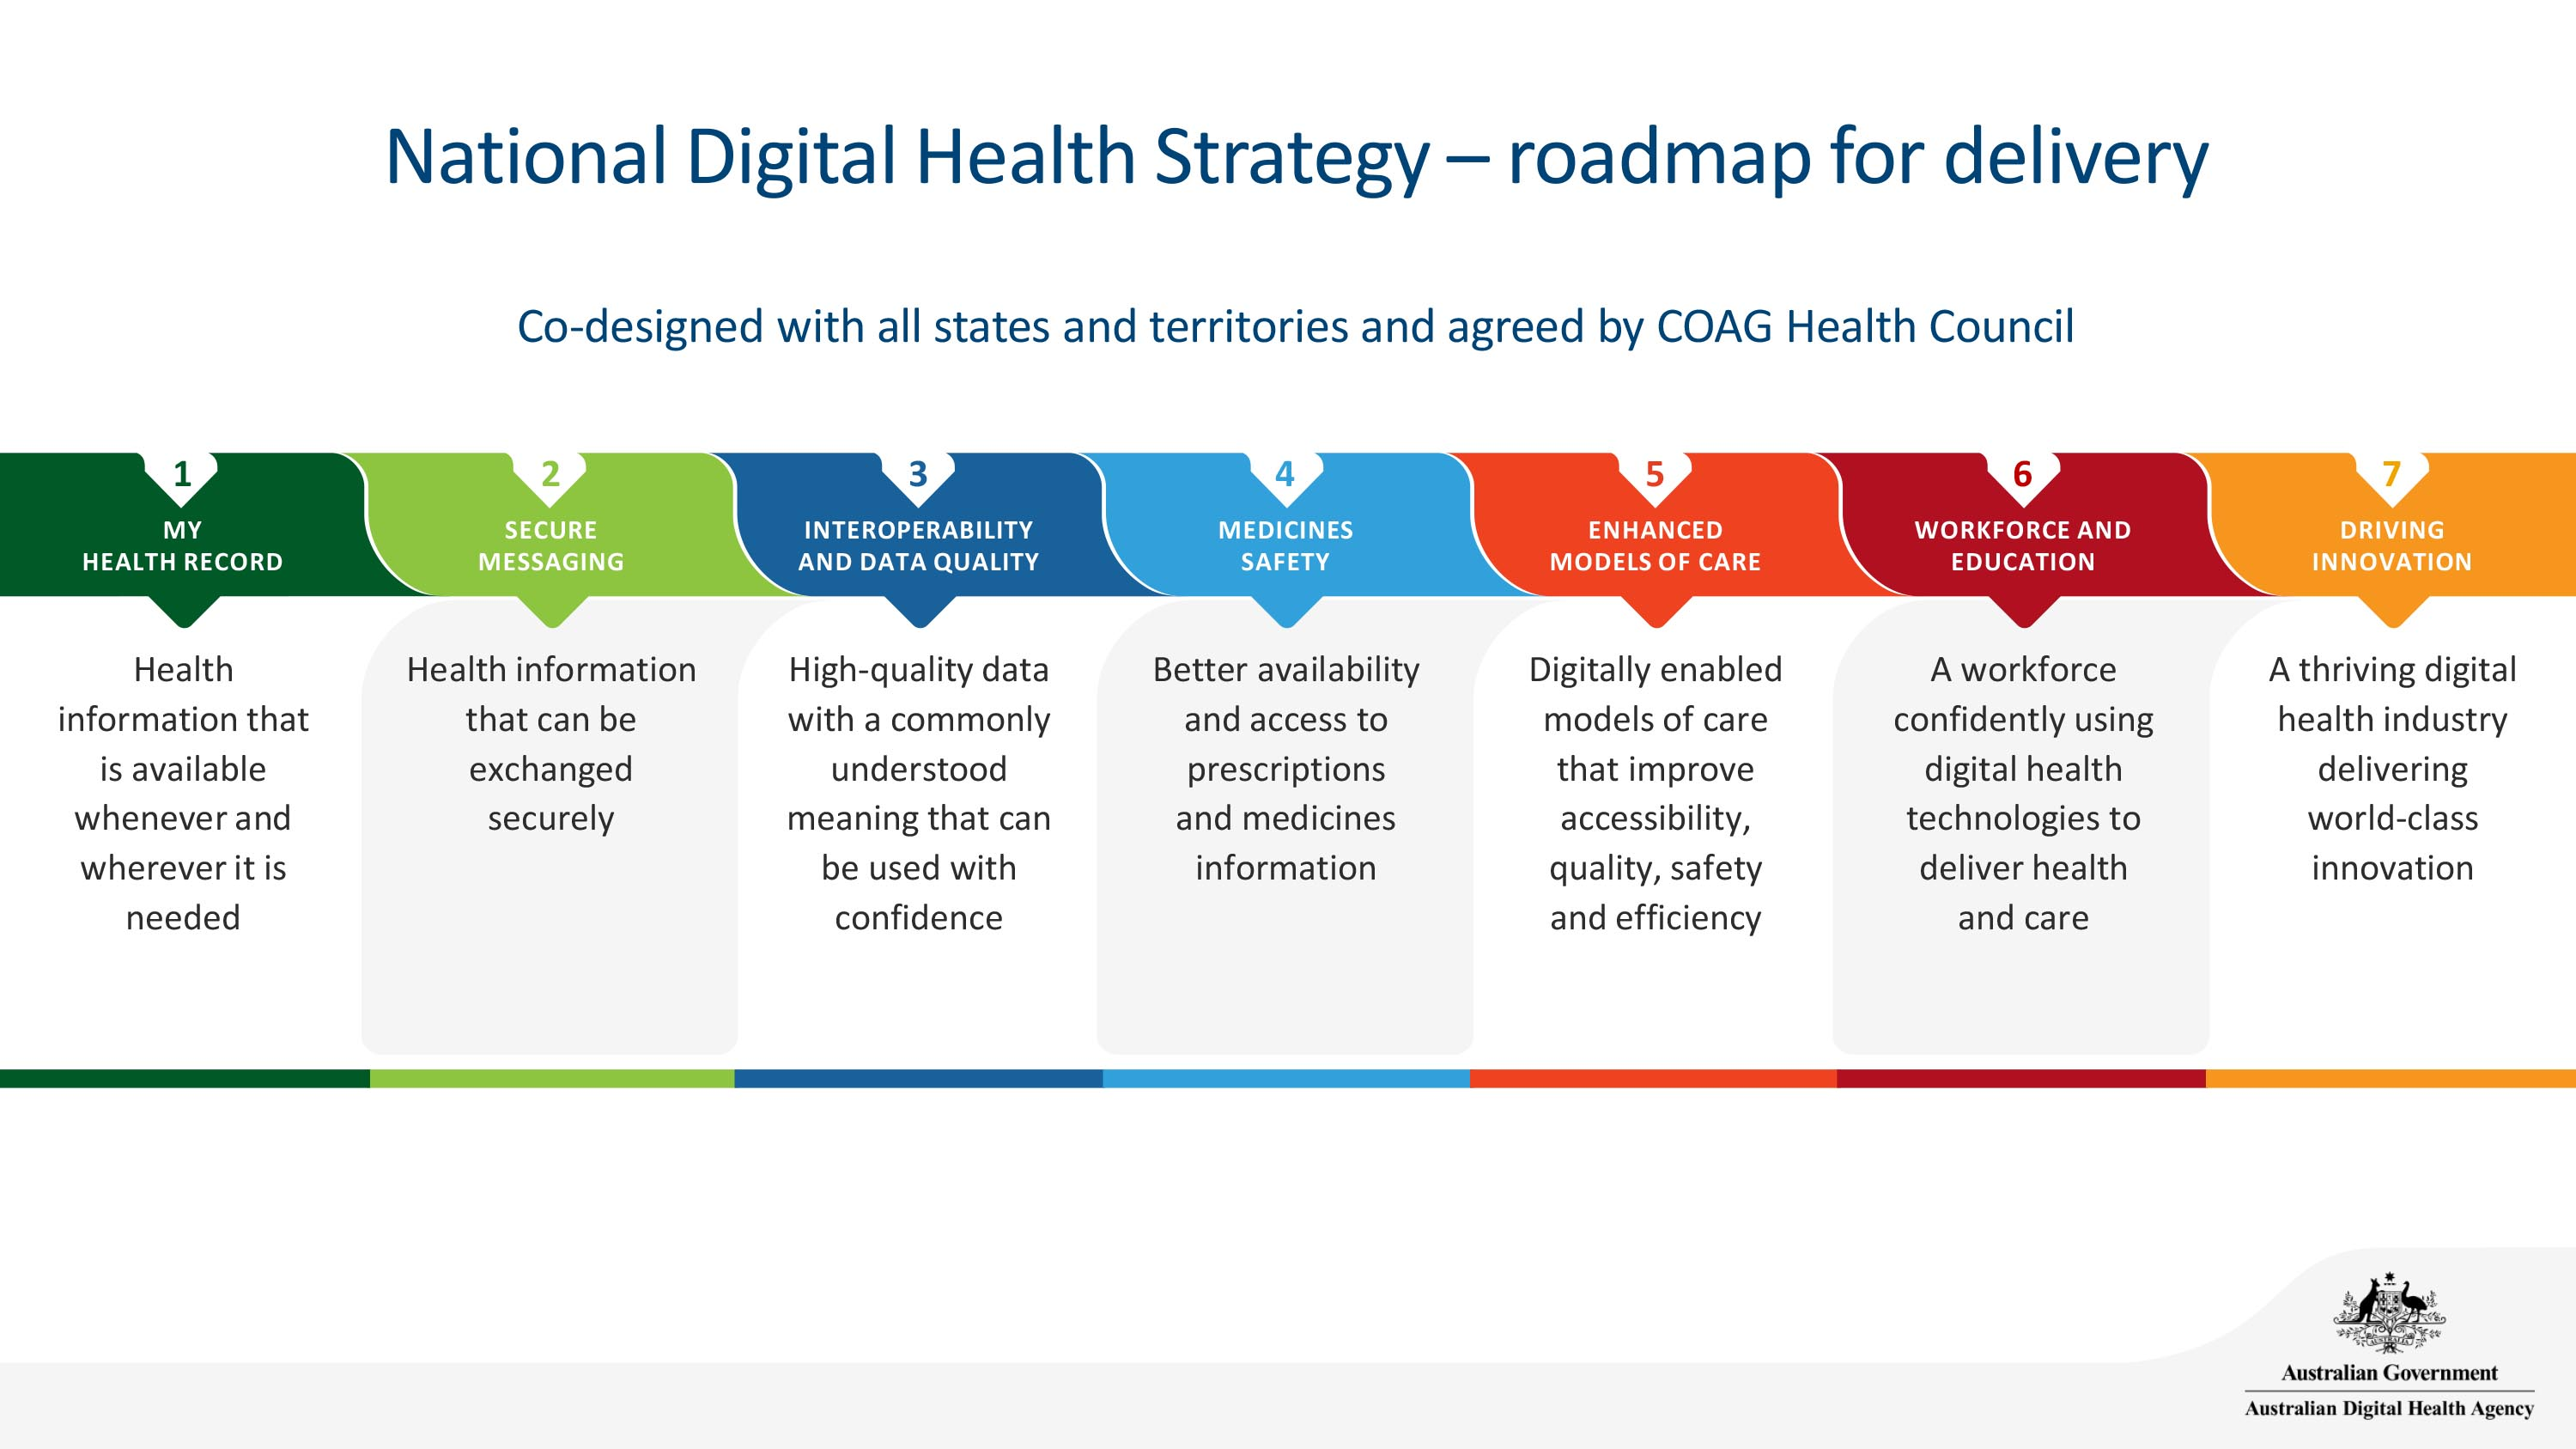 Graphic showing the seven stages of Australia's National Digital Health Strategy